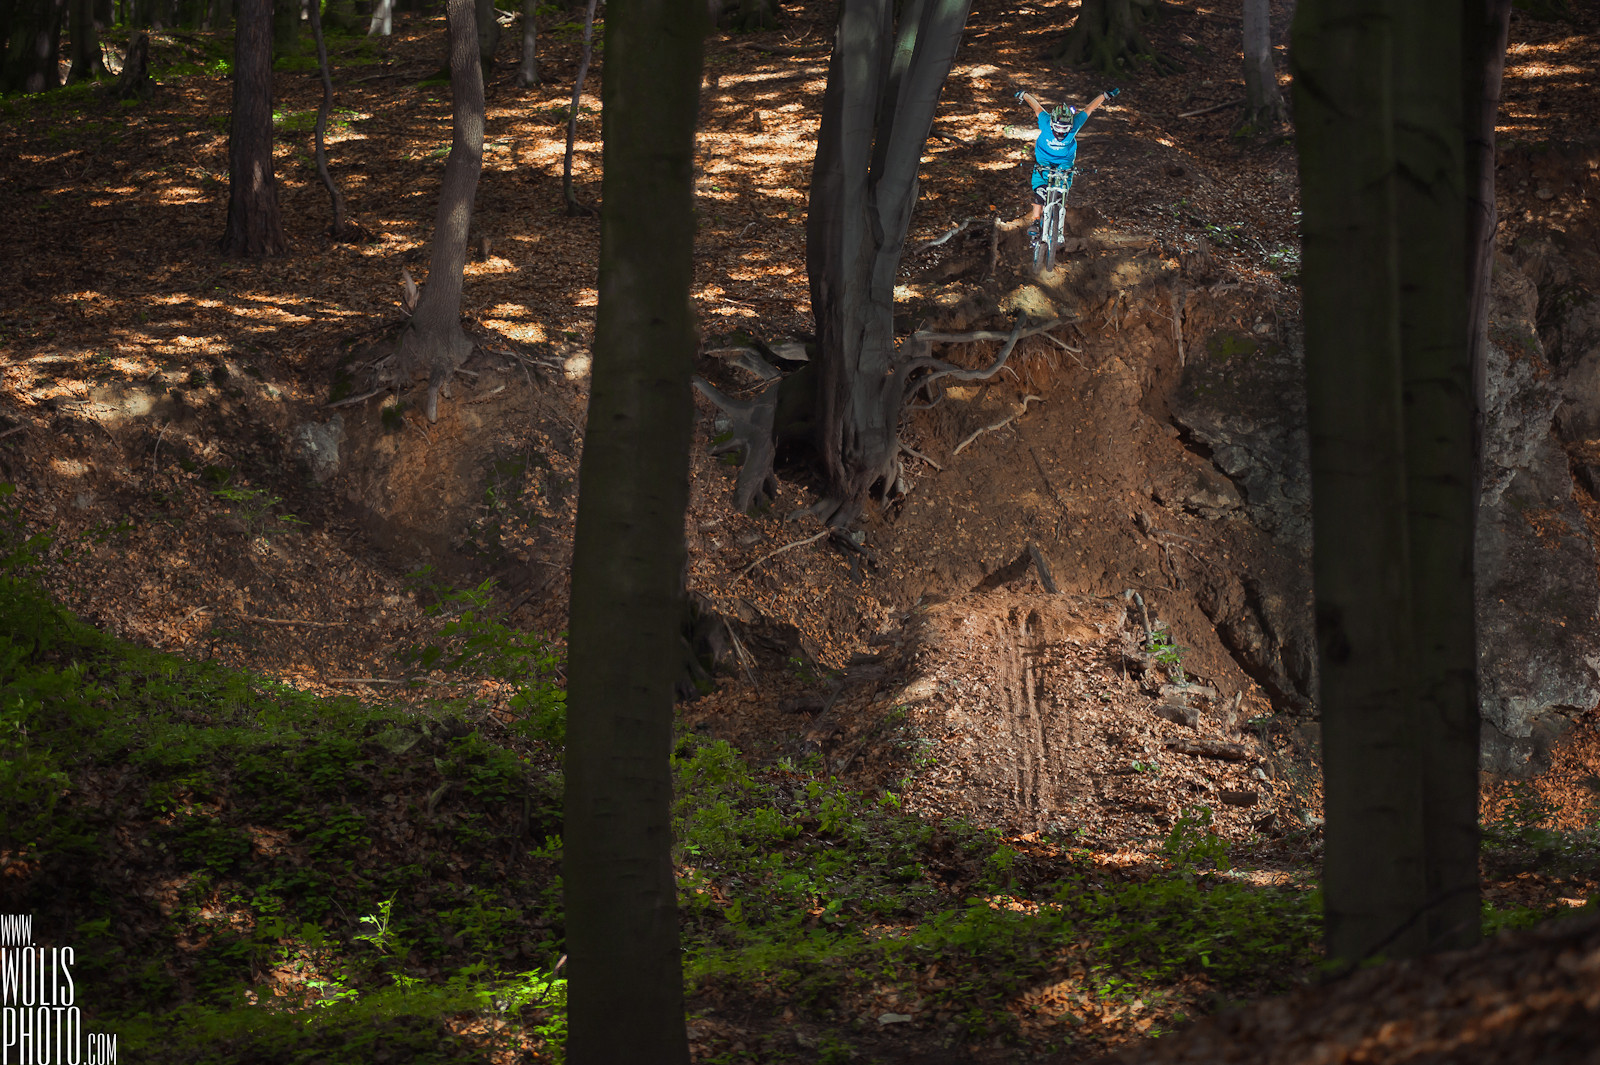 Gap - JawsMtb - Mountain Biking Pictures - Vital MTB